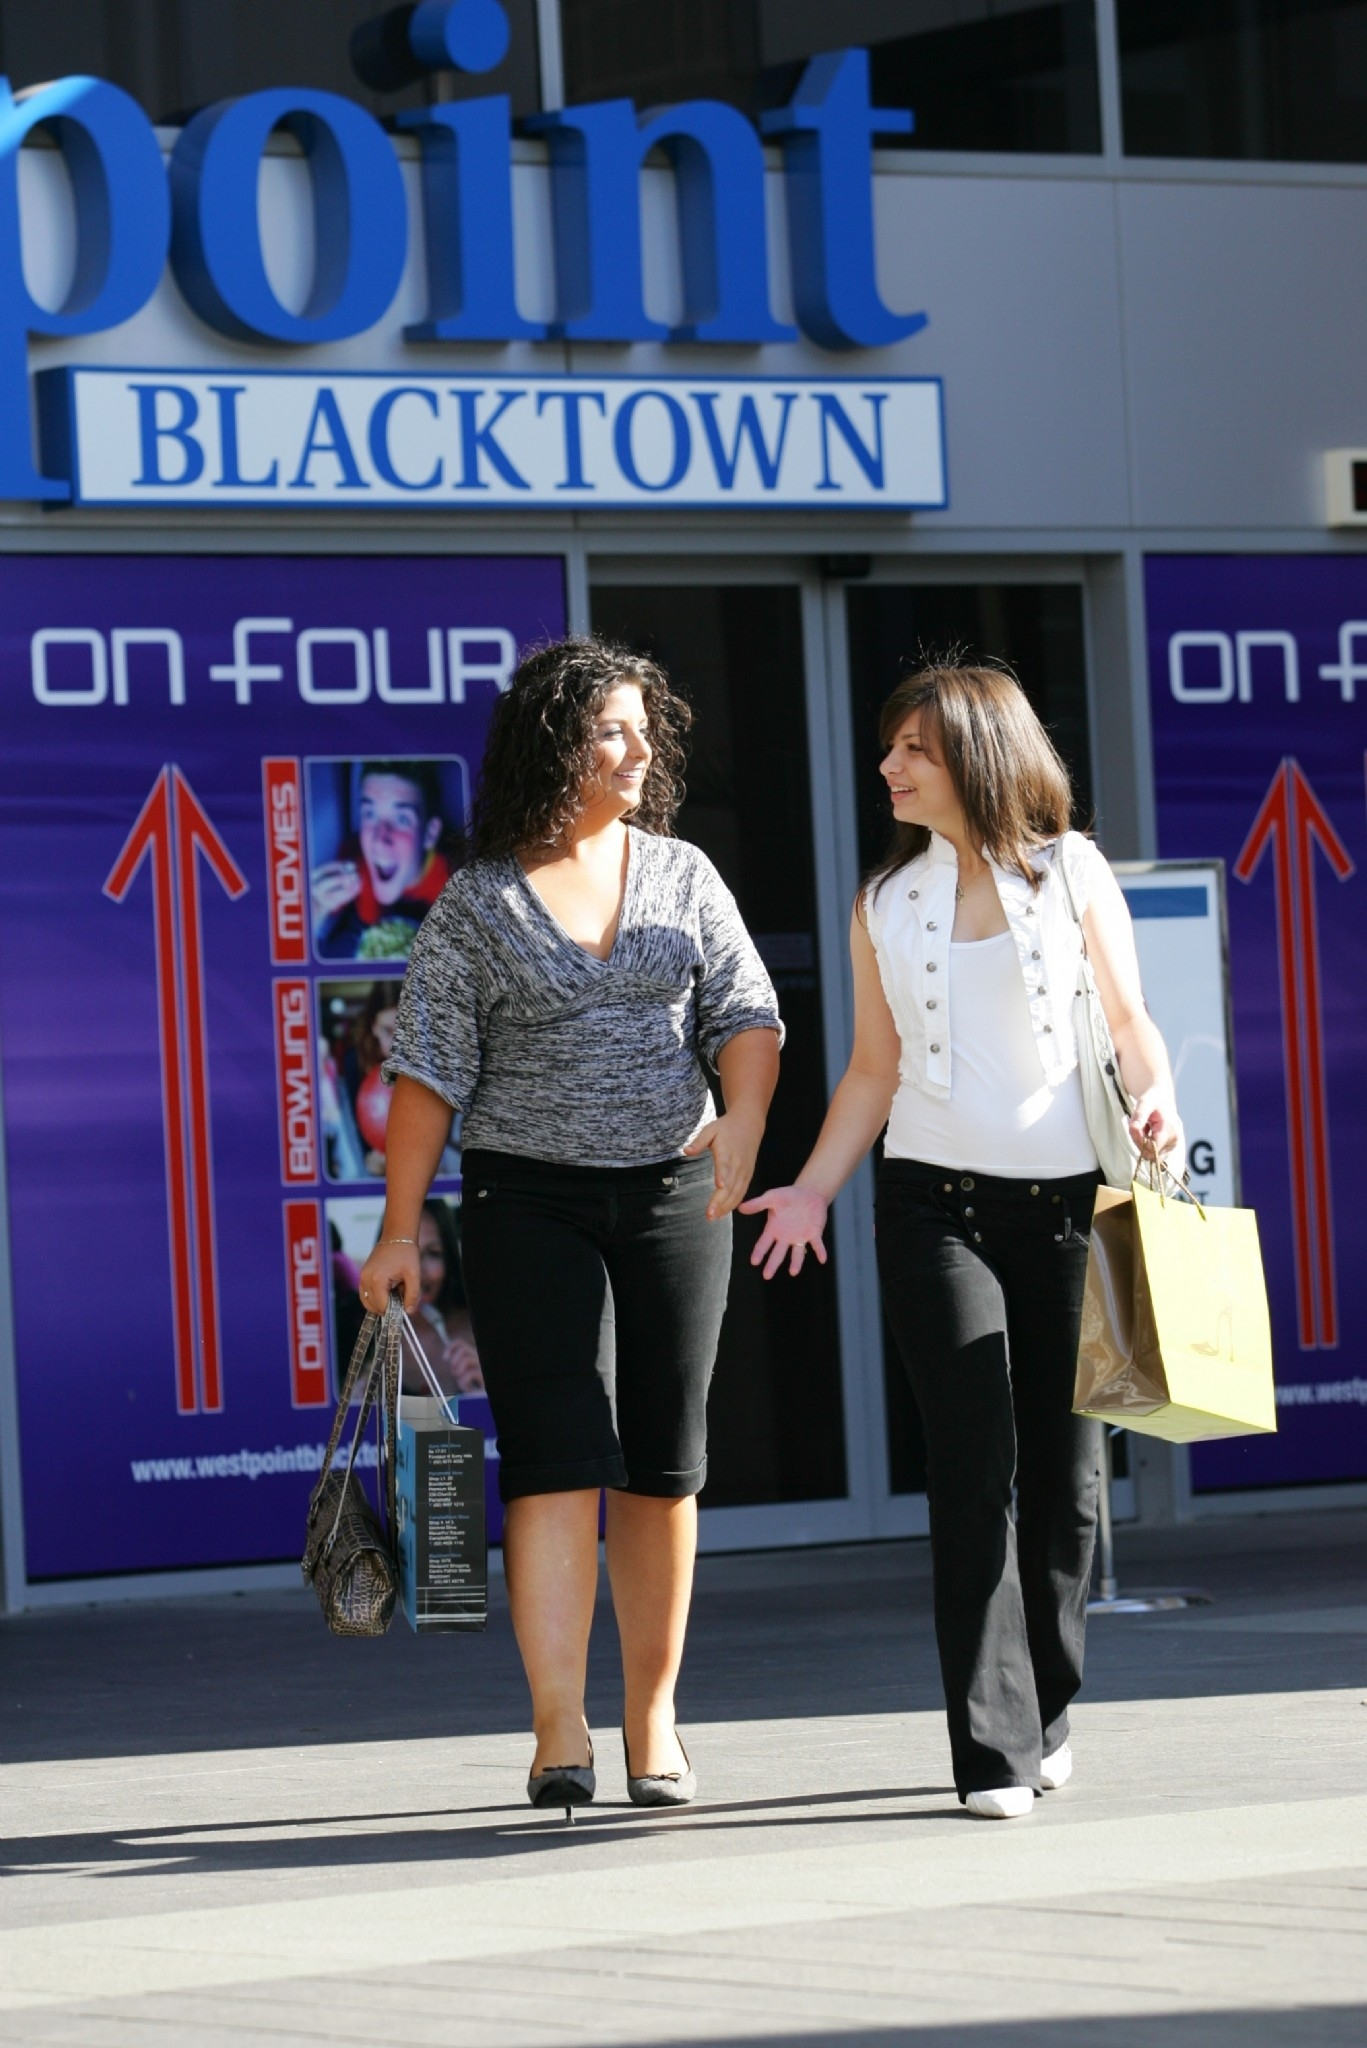 Shopping in Blacktown